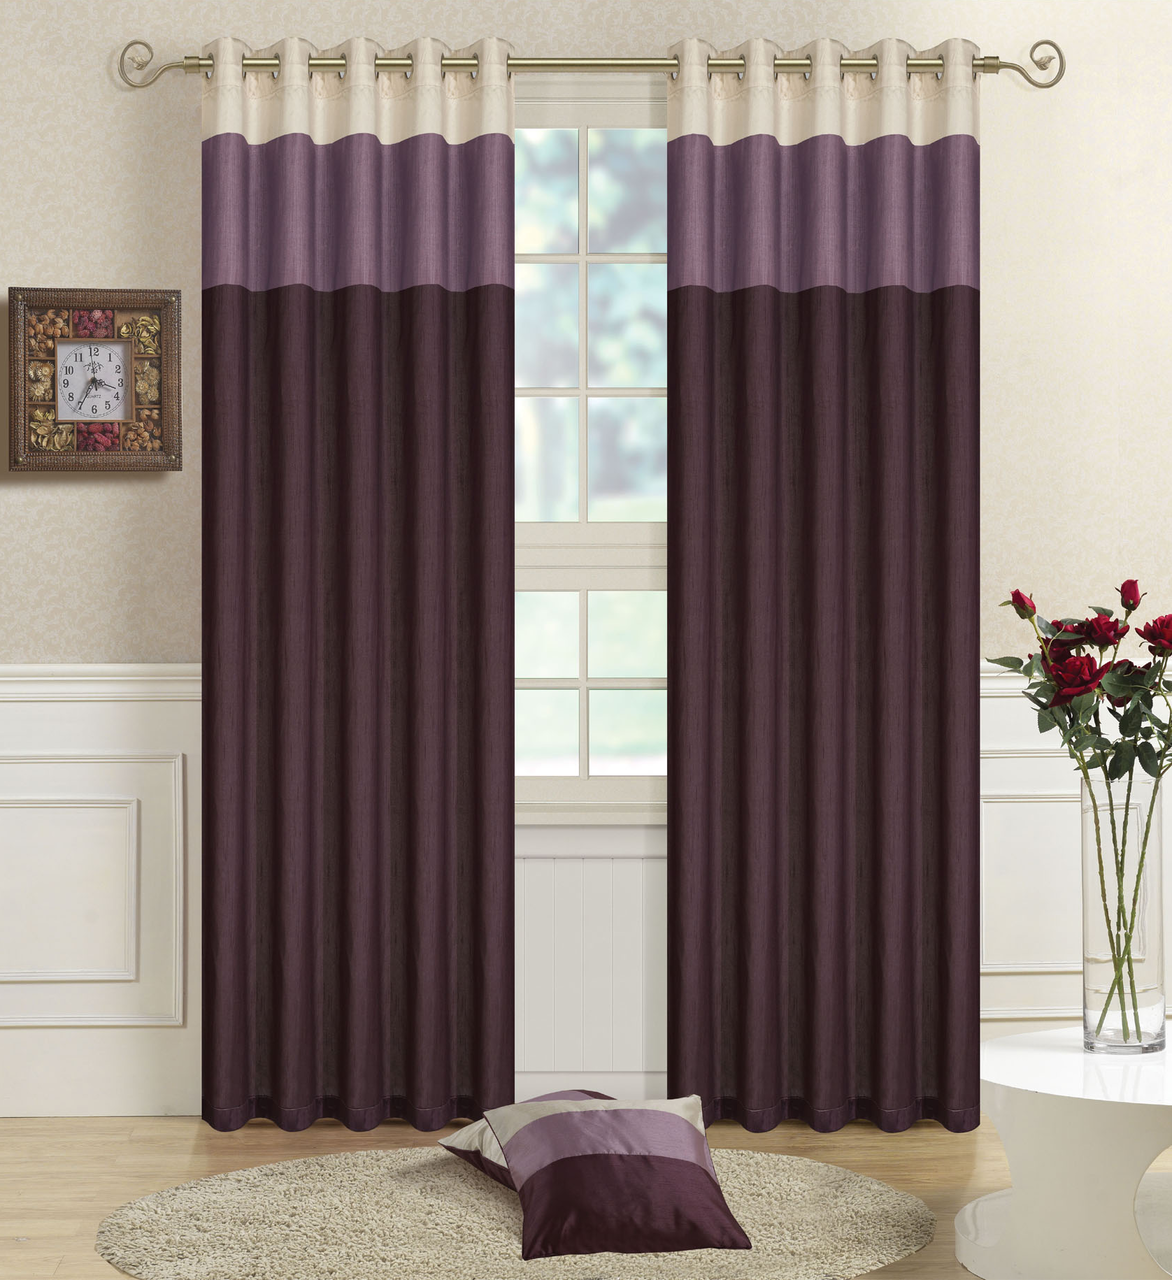 Sweet Violet Bedroom Curtain Photos Collection  Fabulous Violet - Bedroom curtain design